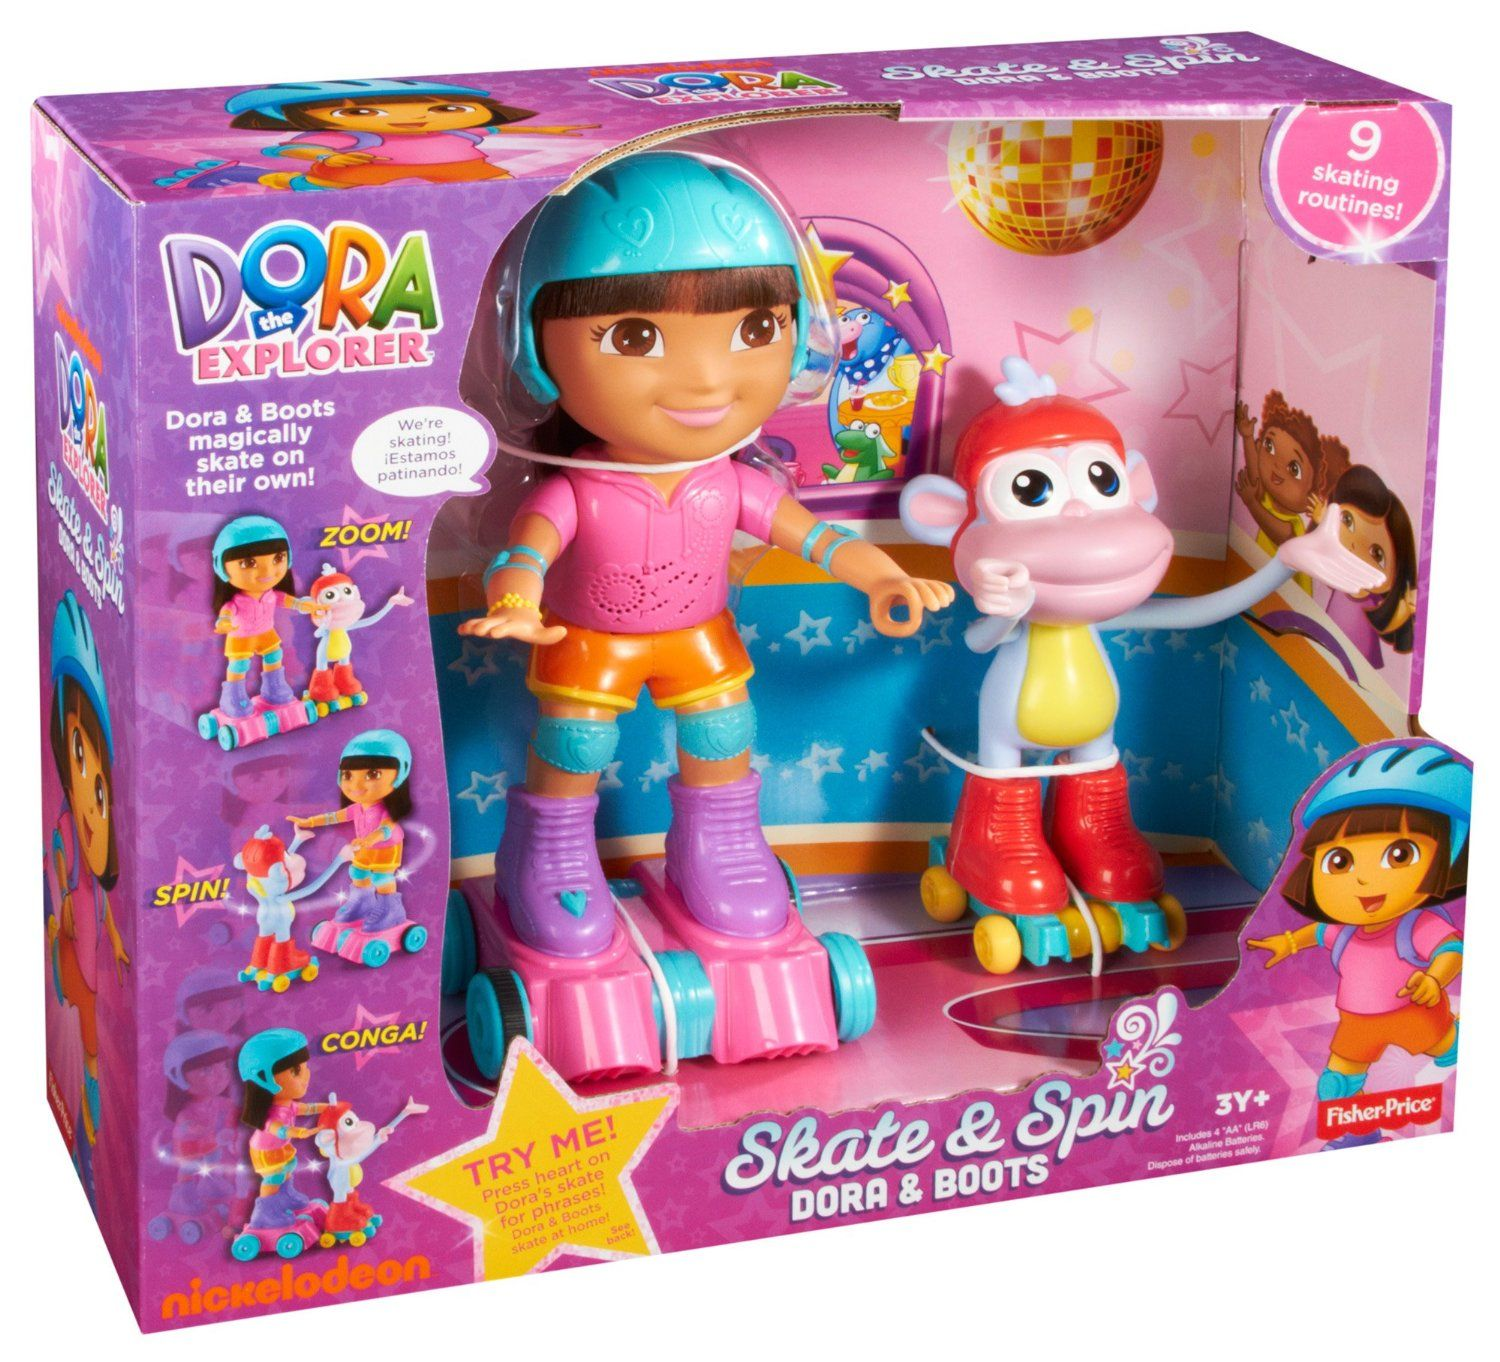 Fisher price dora la exploradora dora y botas patines vbf - Cocina dora la exploradora fisher price ...